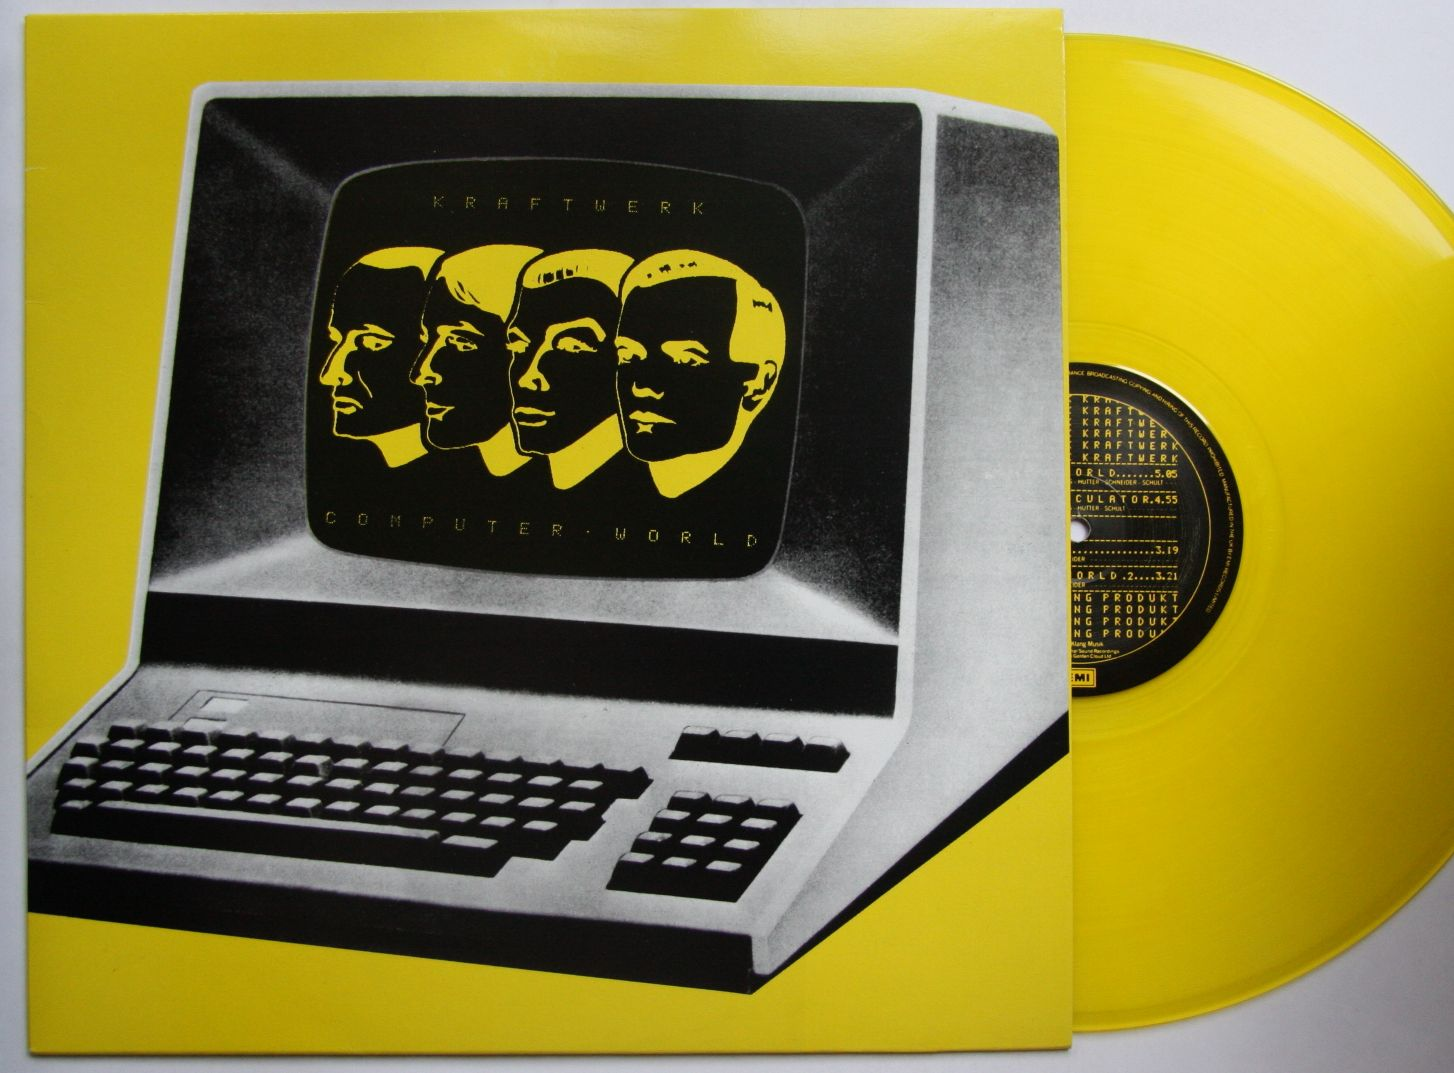 Kraftwerk - Computer World CD